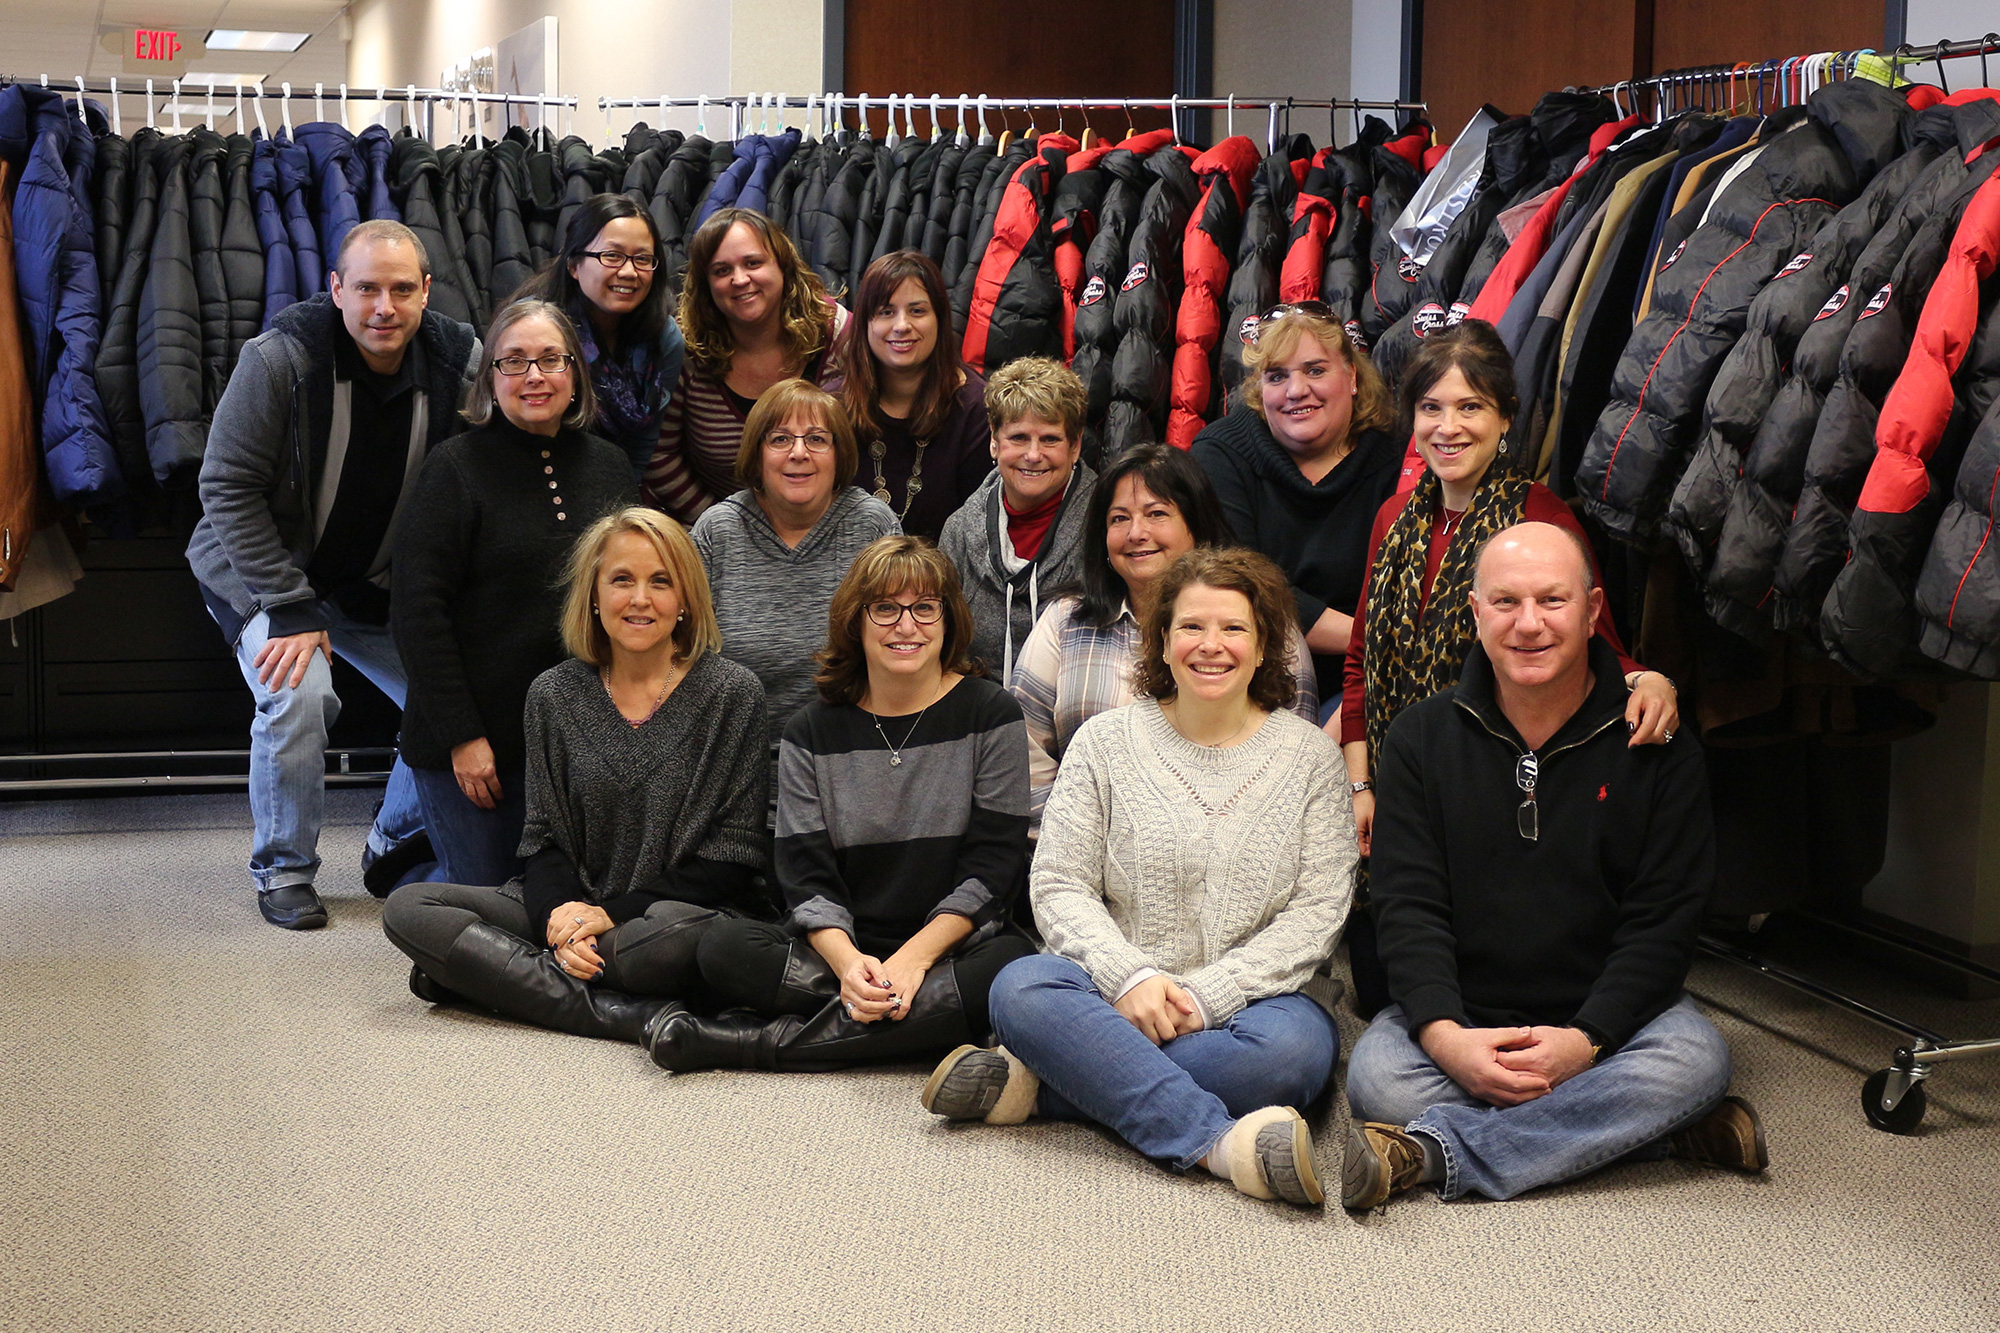 tss-coatDrive-2015